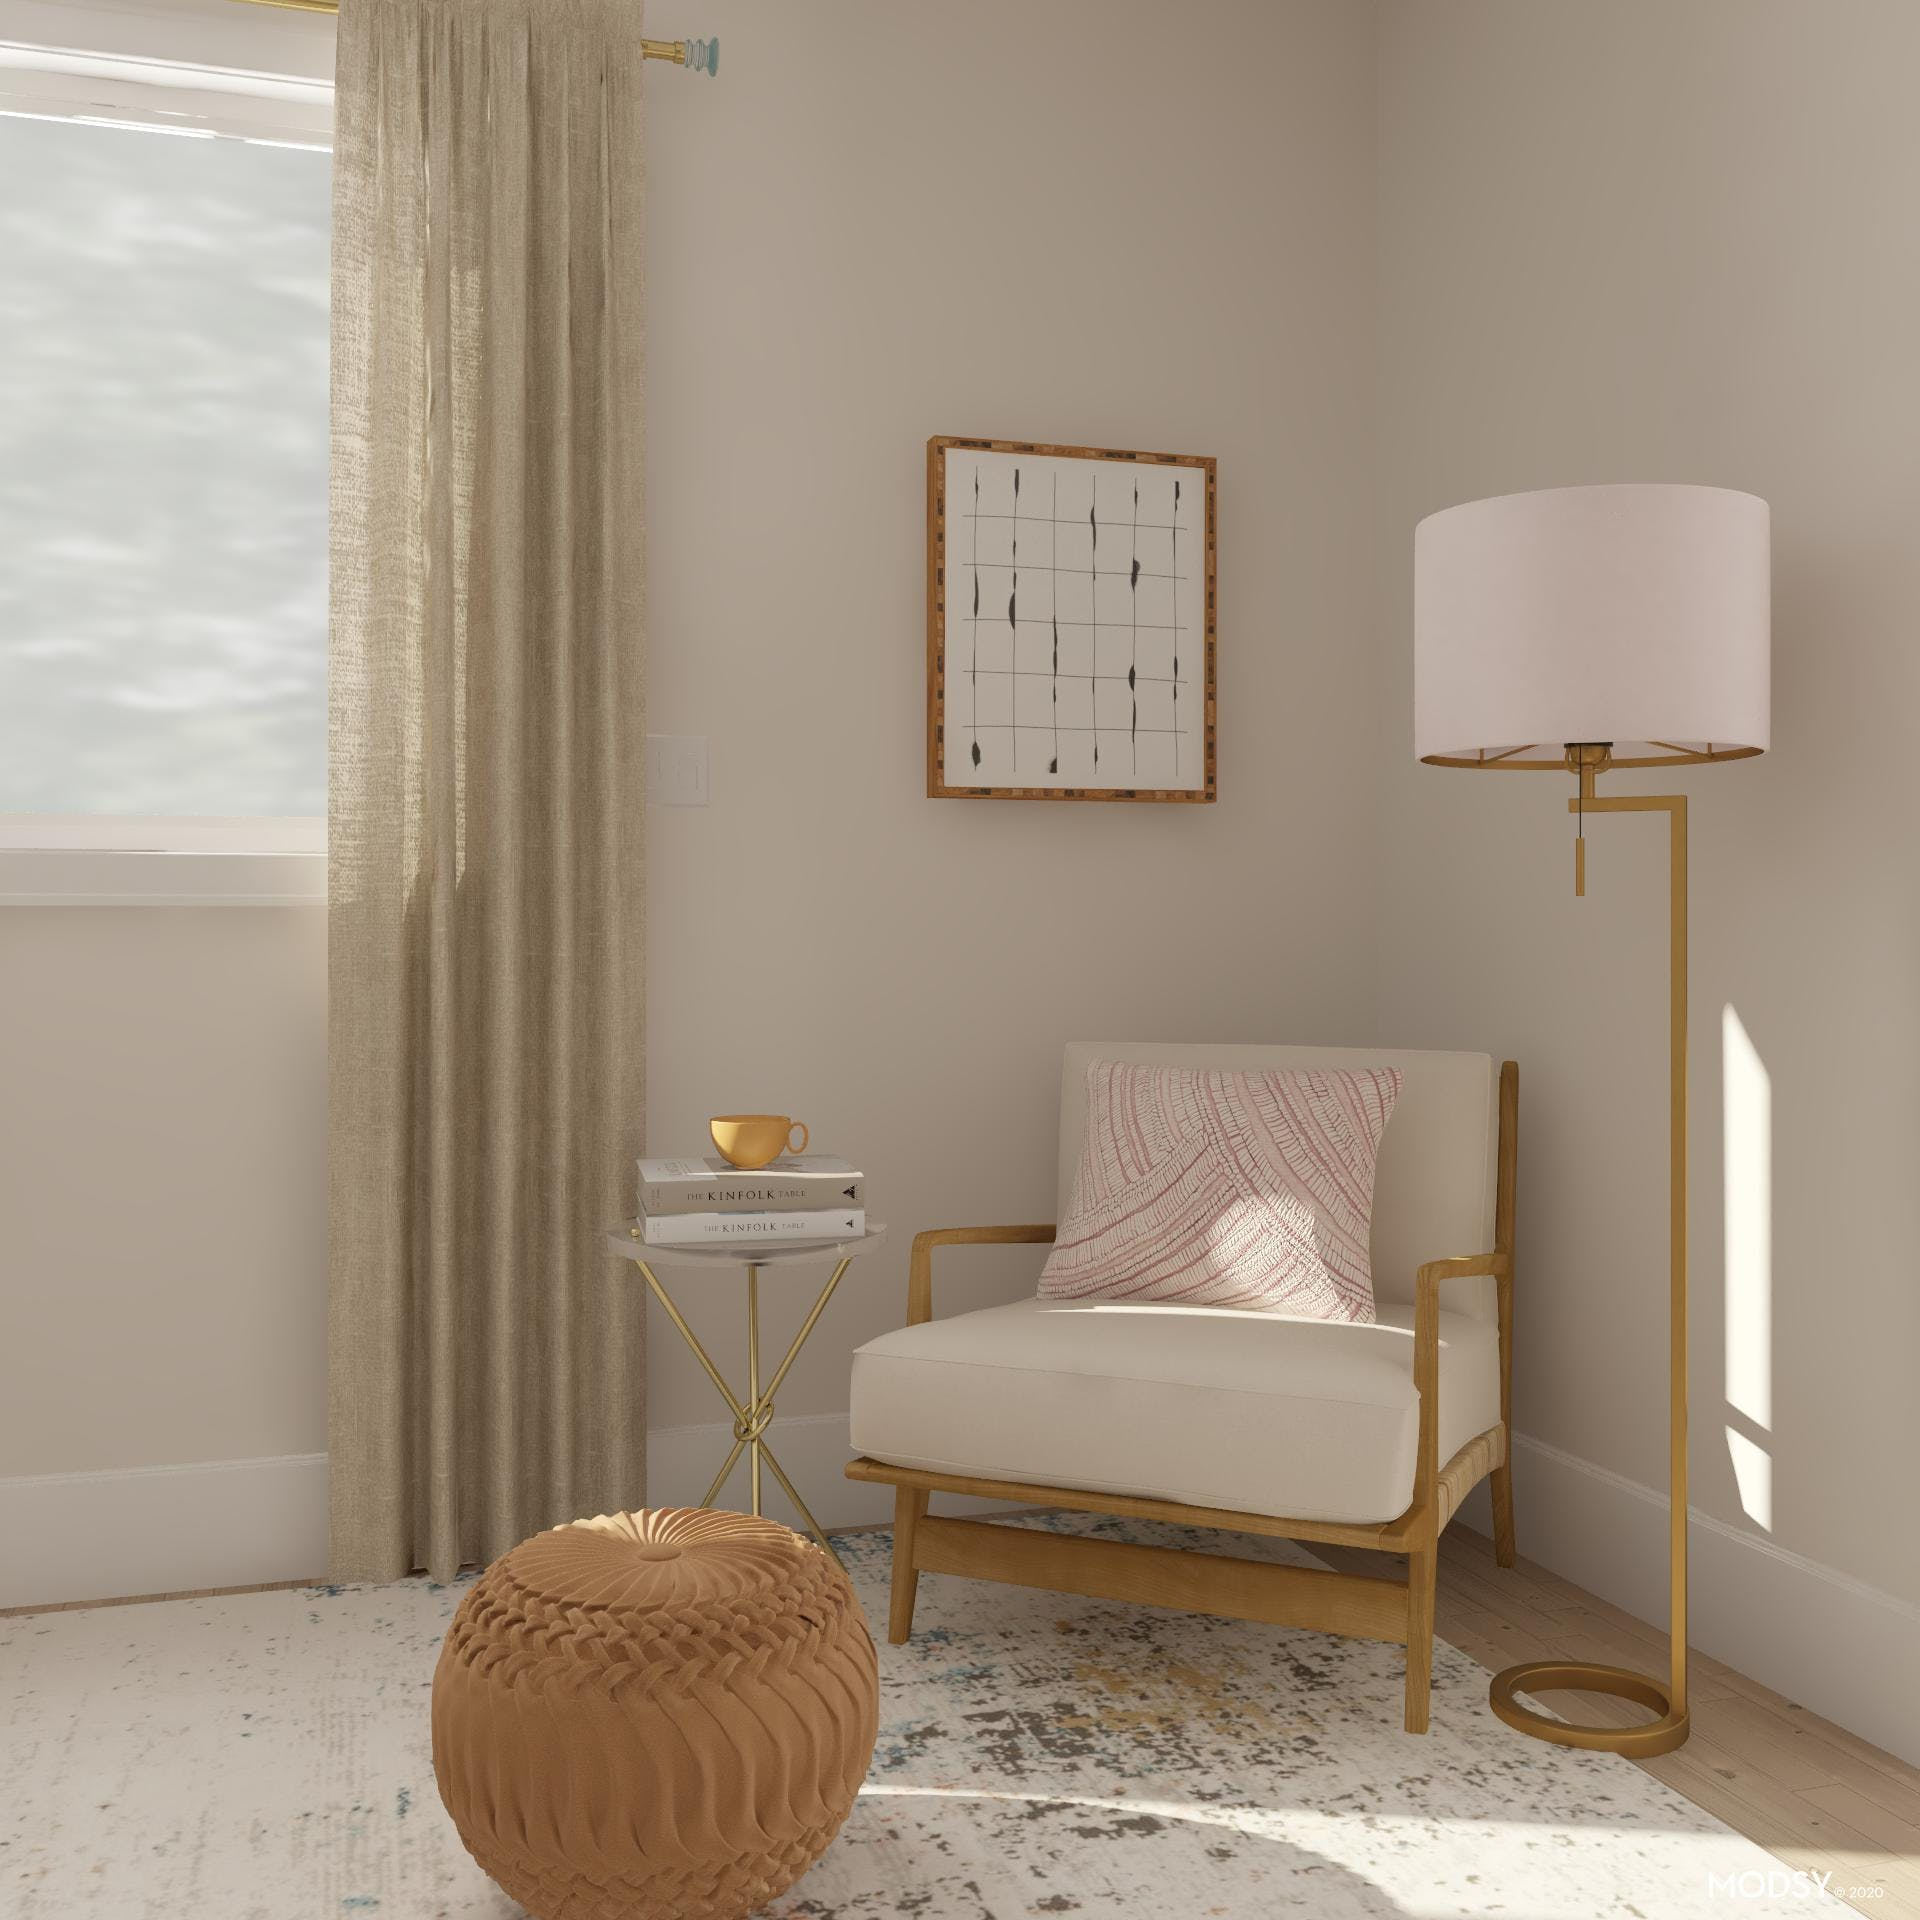 Highlighting Neutrals with Pastels